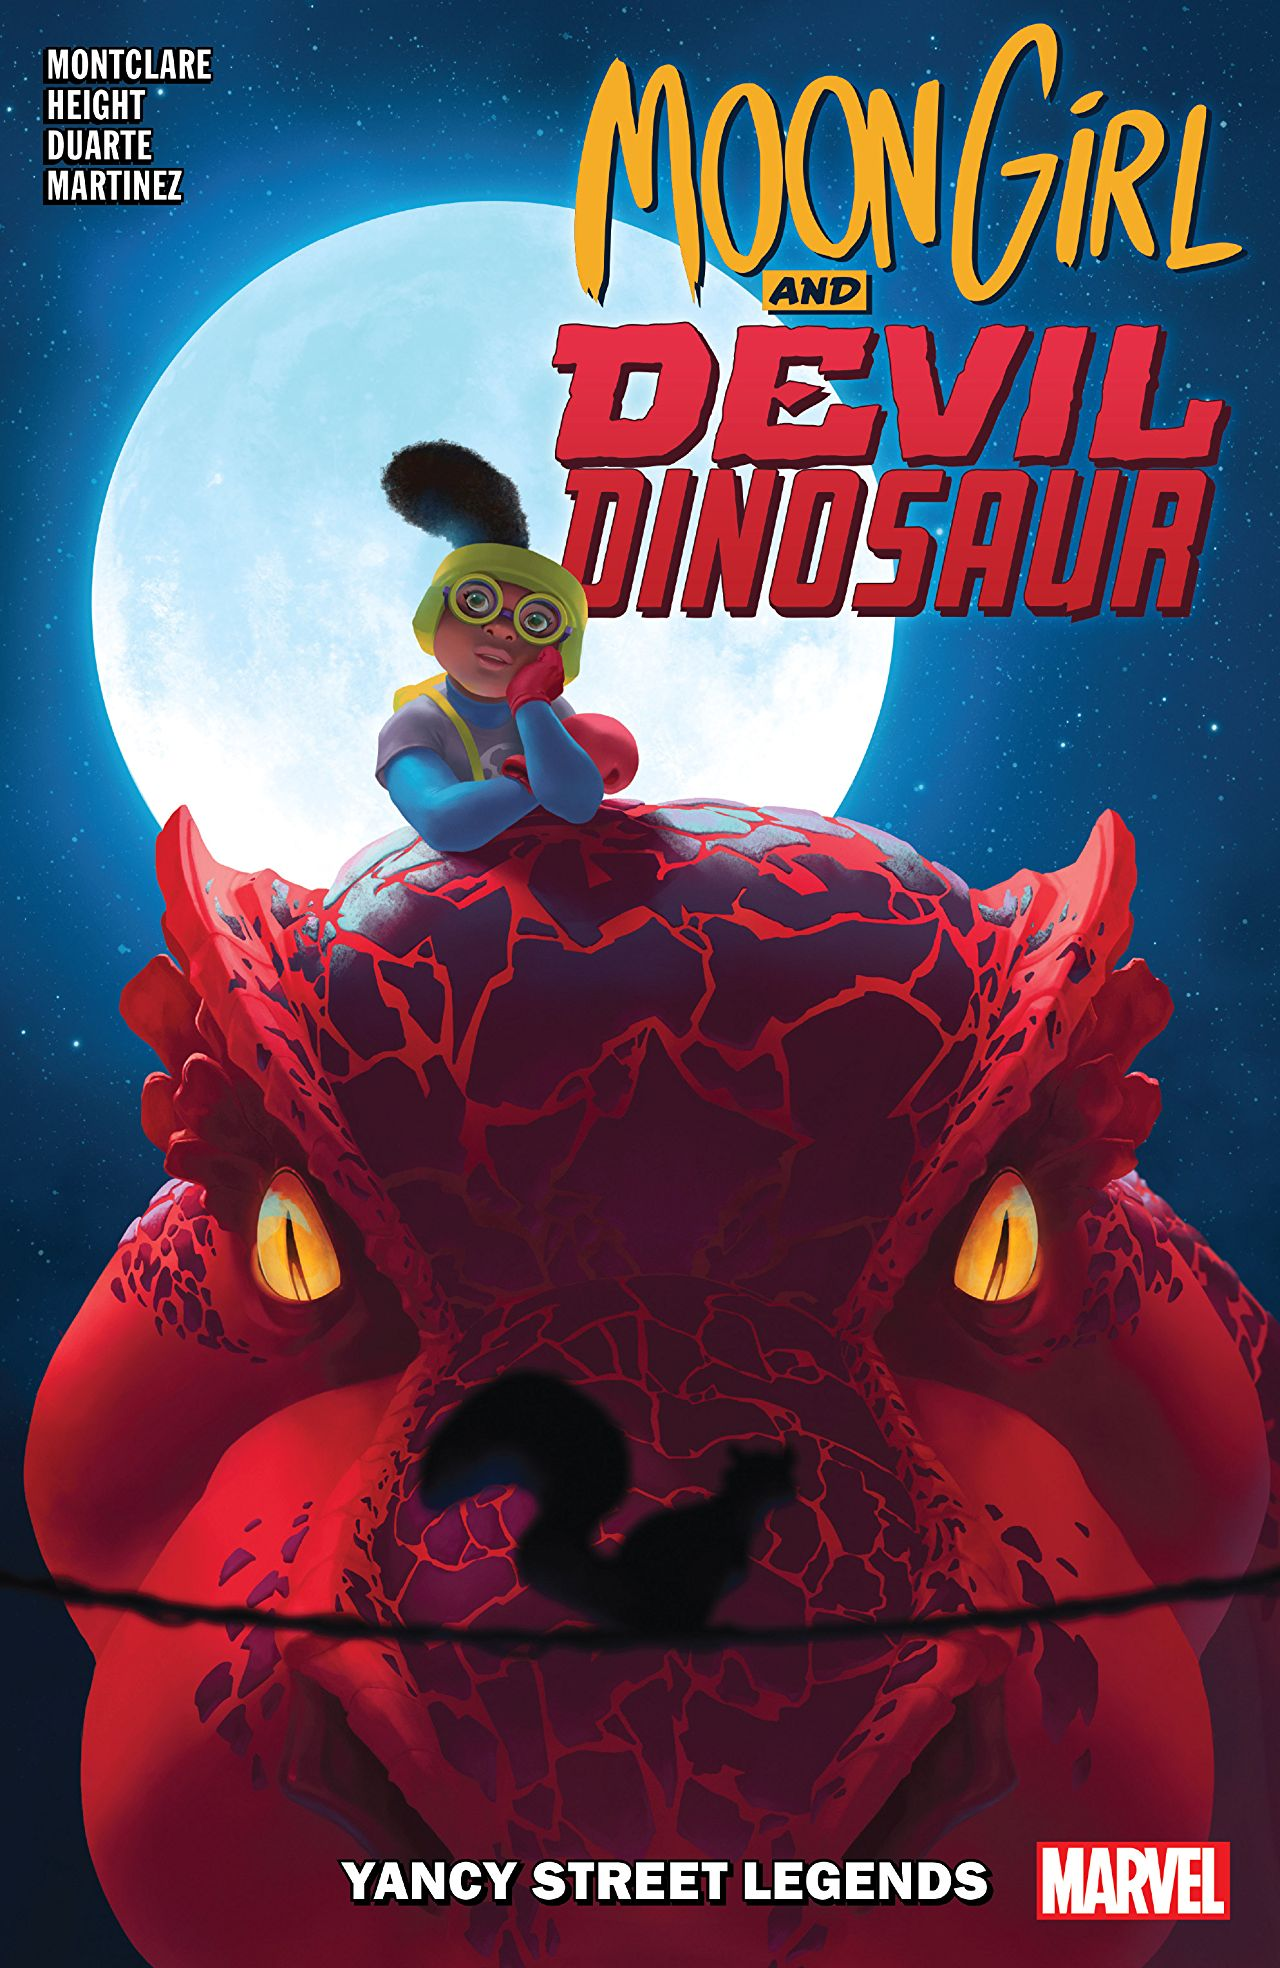 Moon Girl And Devil Dinosaur Vol. 8: Yancy Street Legends (Trade Paperback)